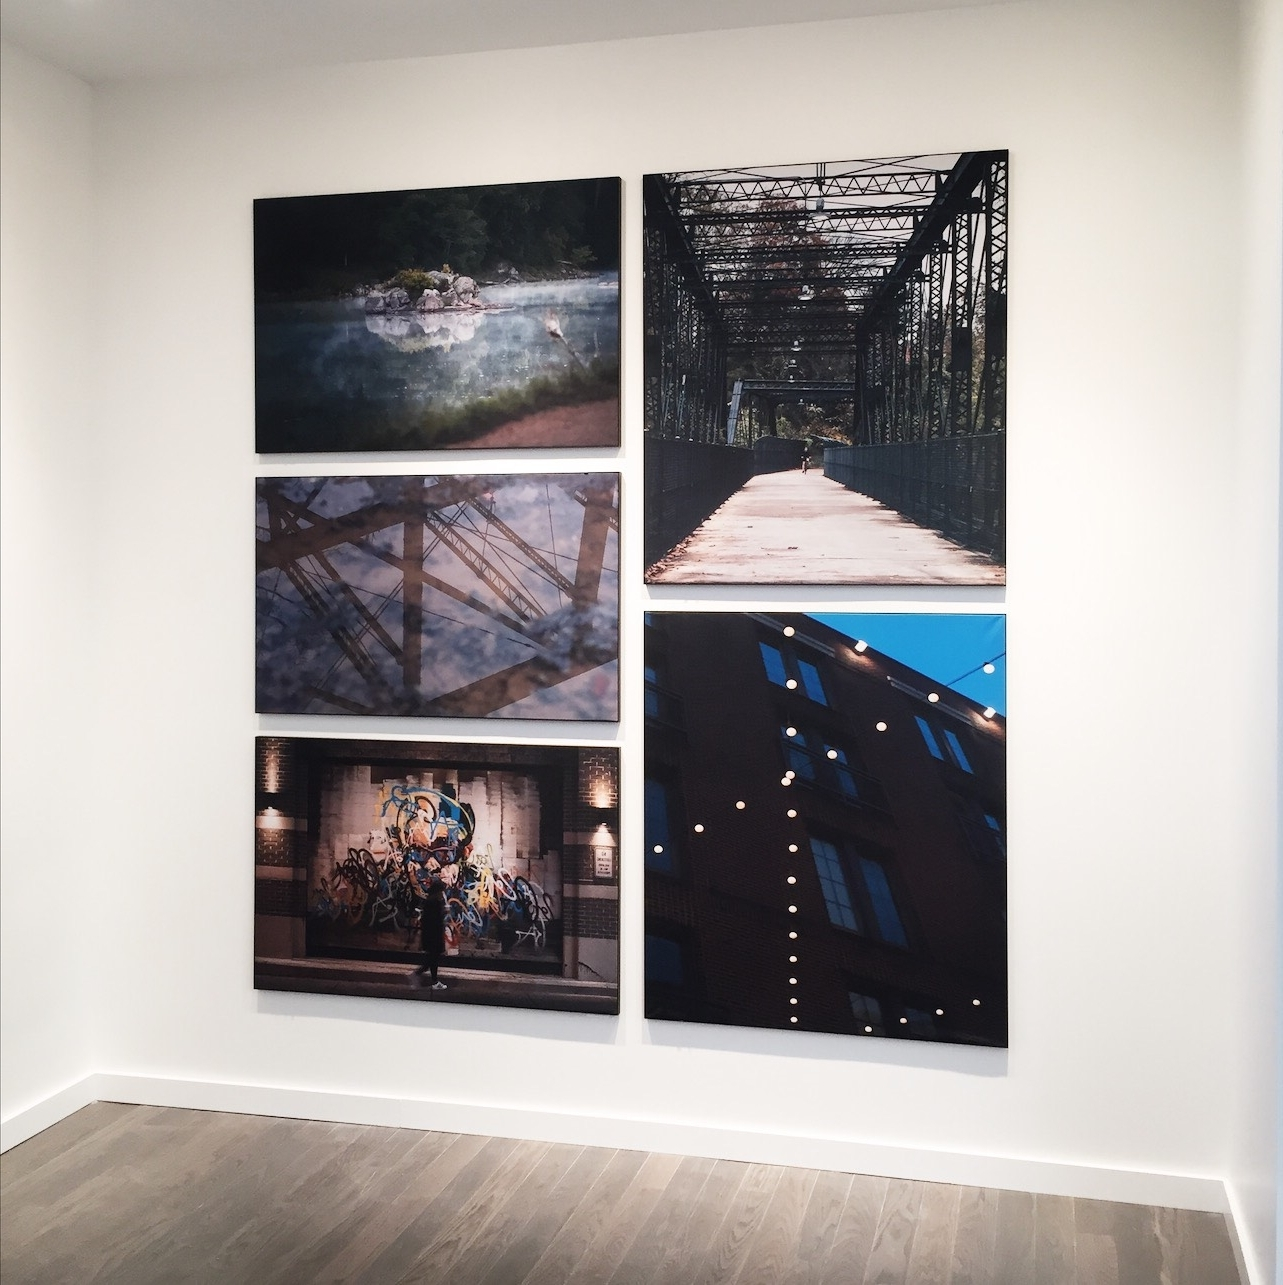 Latest Stretch Fabric Framing Systems For Silicone Egde Graphics Intended For Stretchable Fabric Wall Art (View 8 of 15)